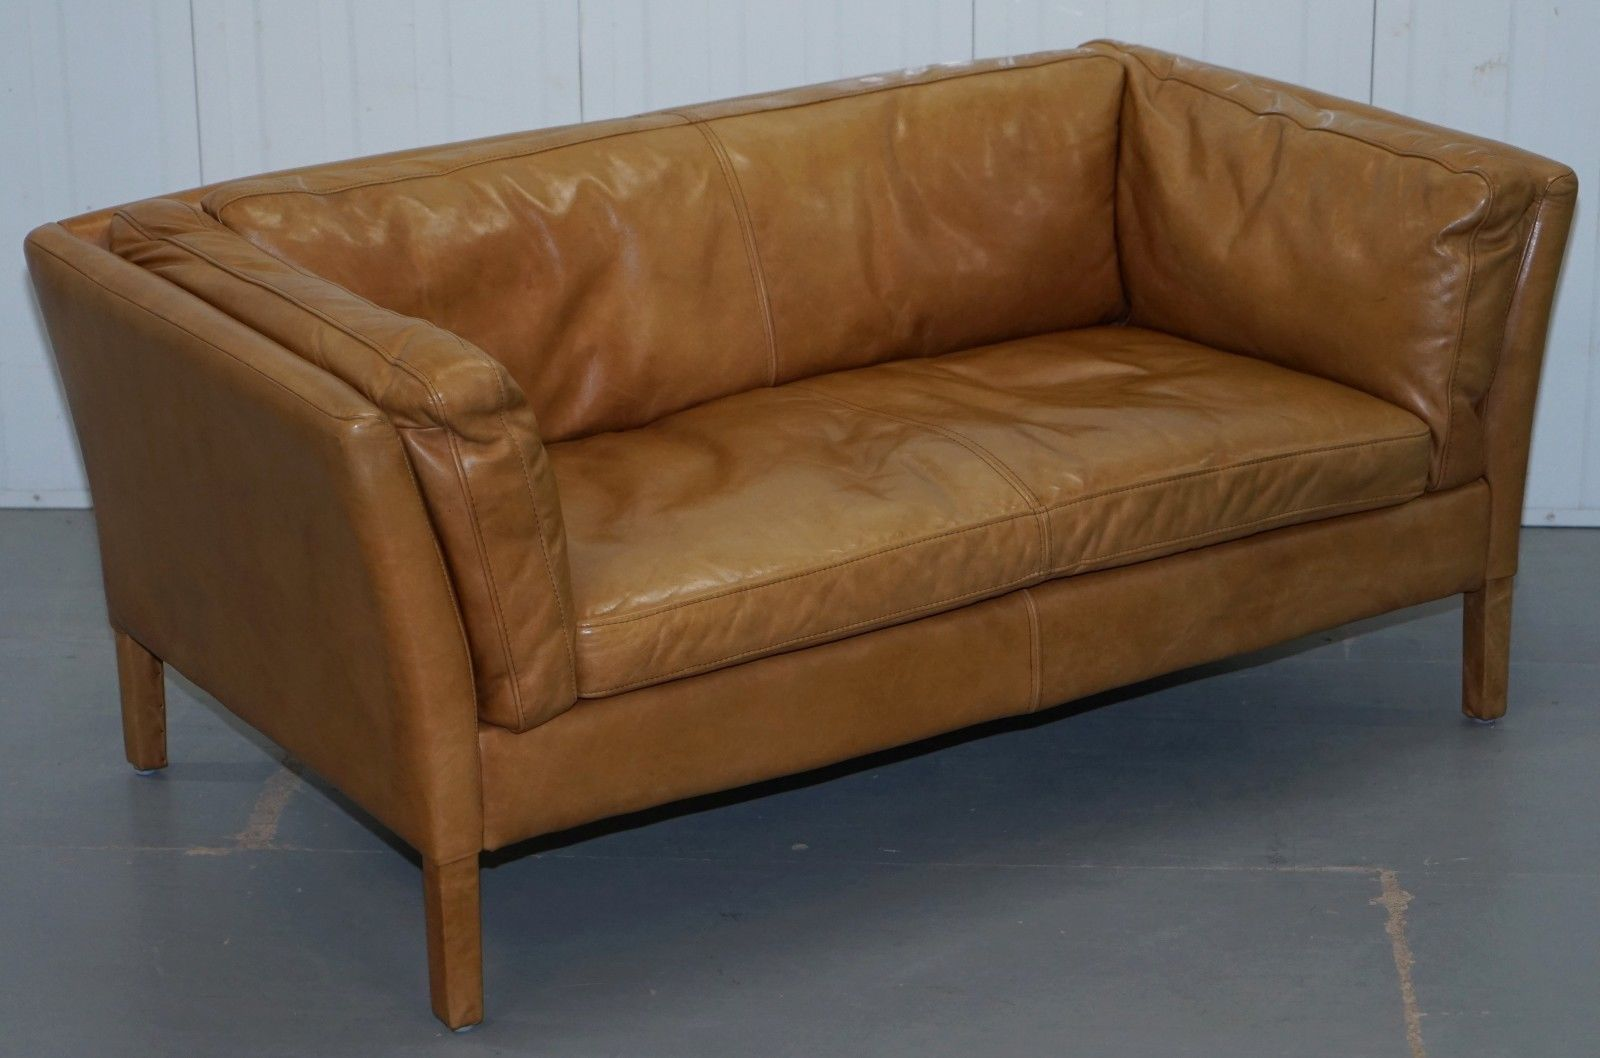 Terrific Halo Groucho Leather Small 2 Seater Sofa Matching Armchair Available Lamtechconsult Wood Chair Design Ideas Lamtechconsultcom